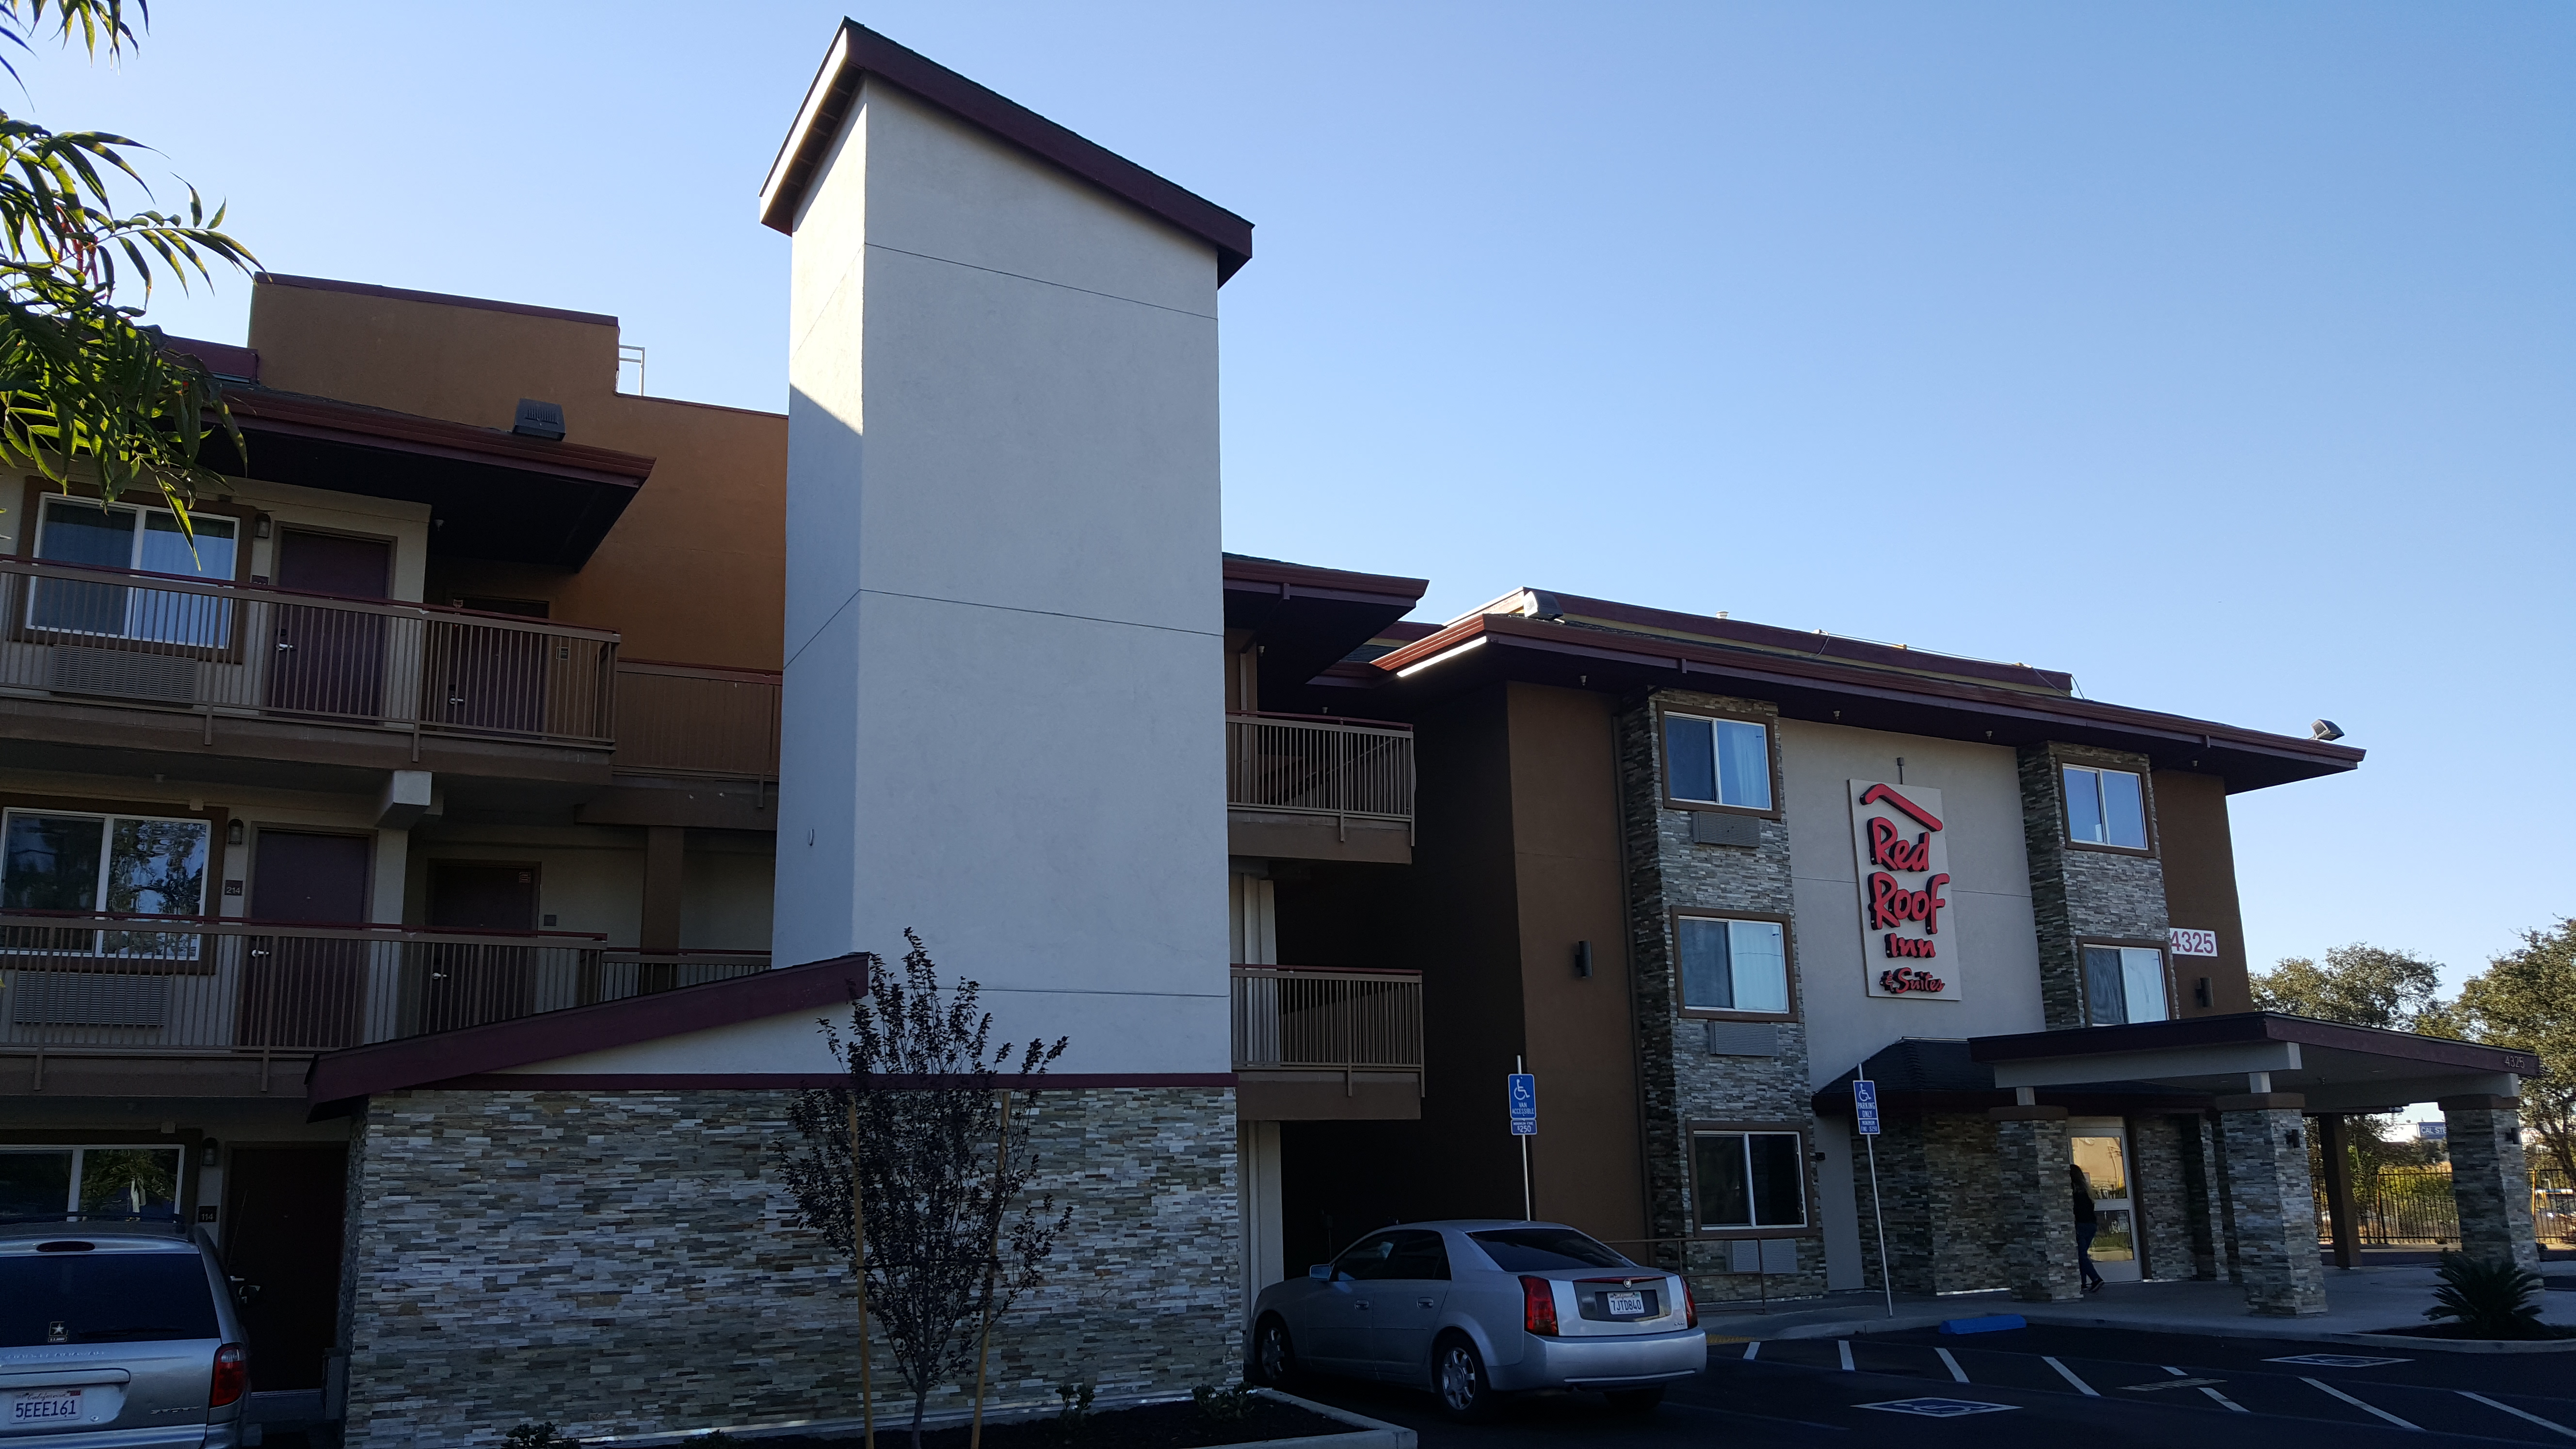 Red Roof Inn Toll Free Number Bang Good China